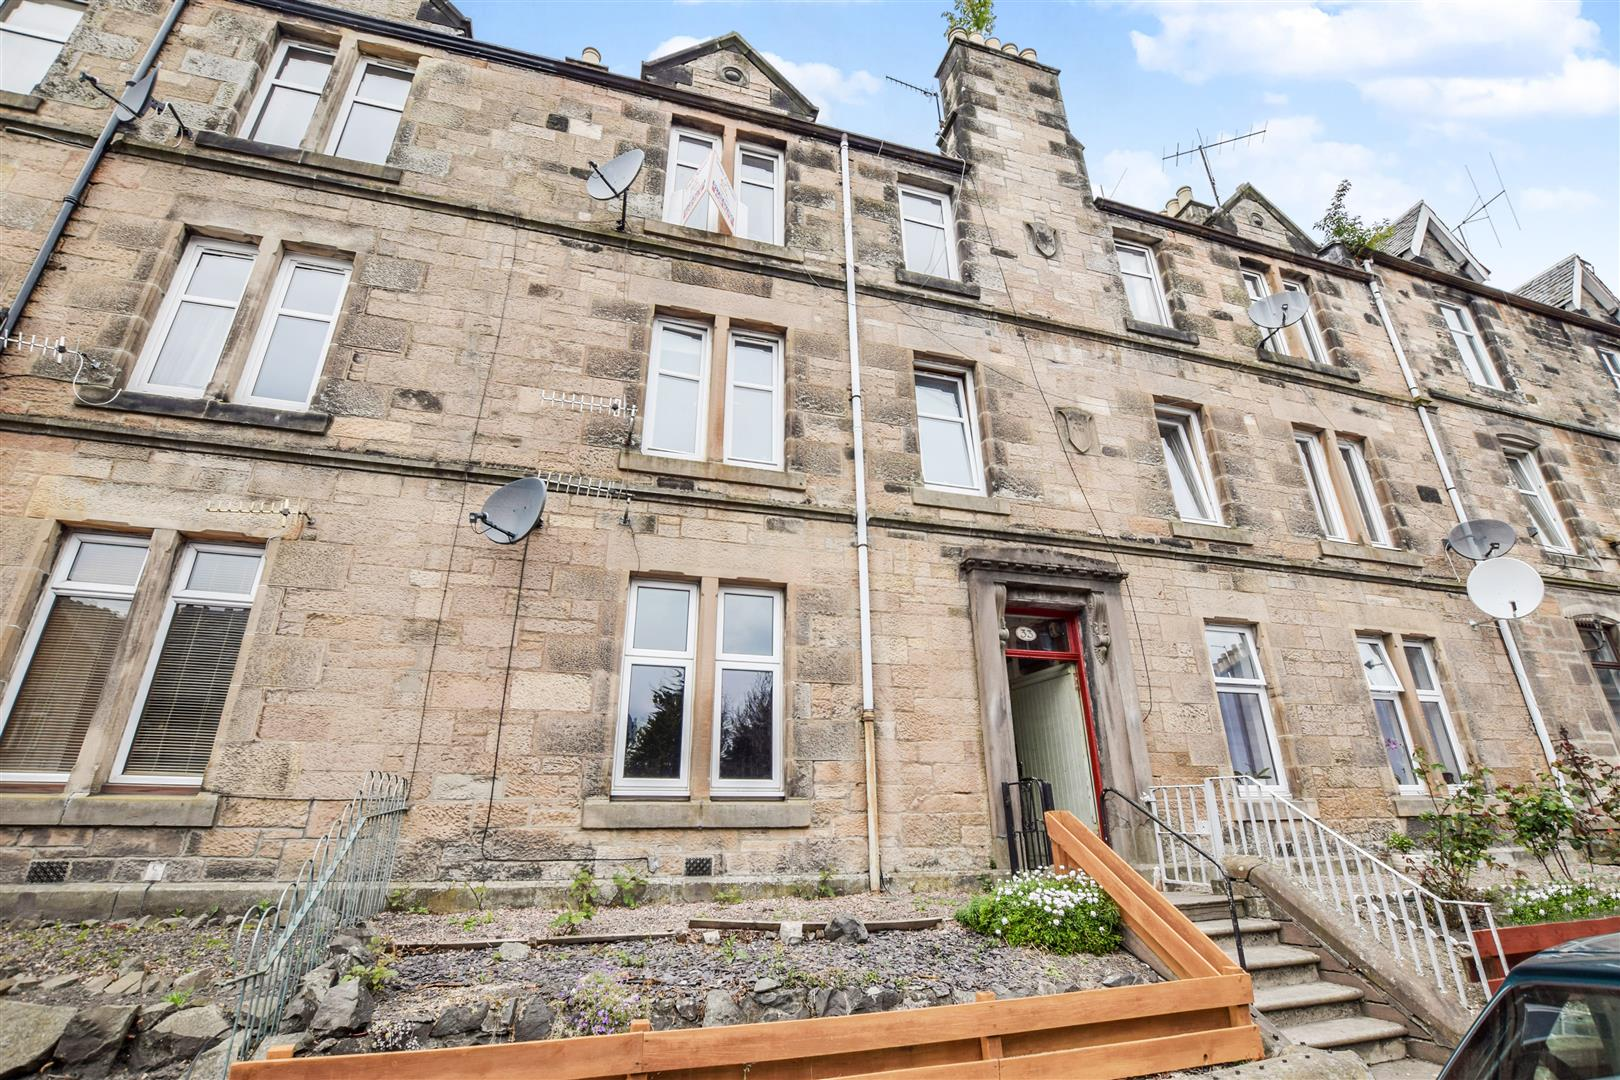 33B, Friar Street, Perth, Perthshire, PH2 0EG, UK